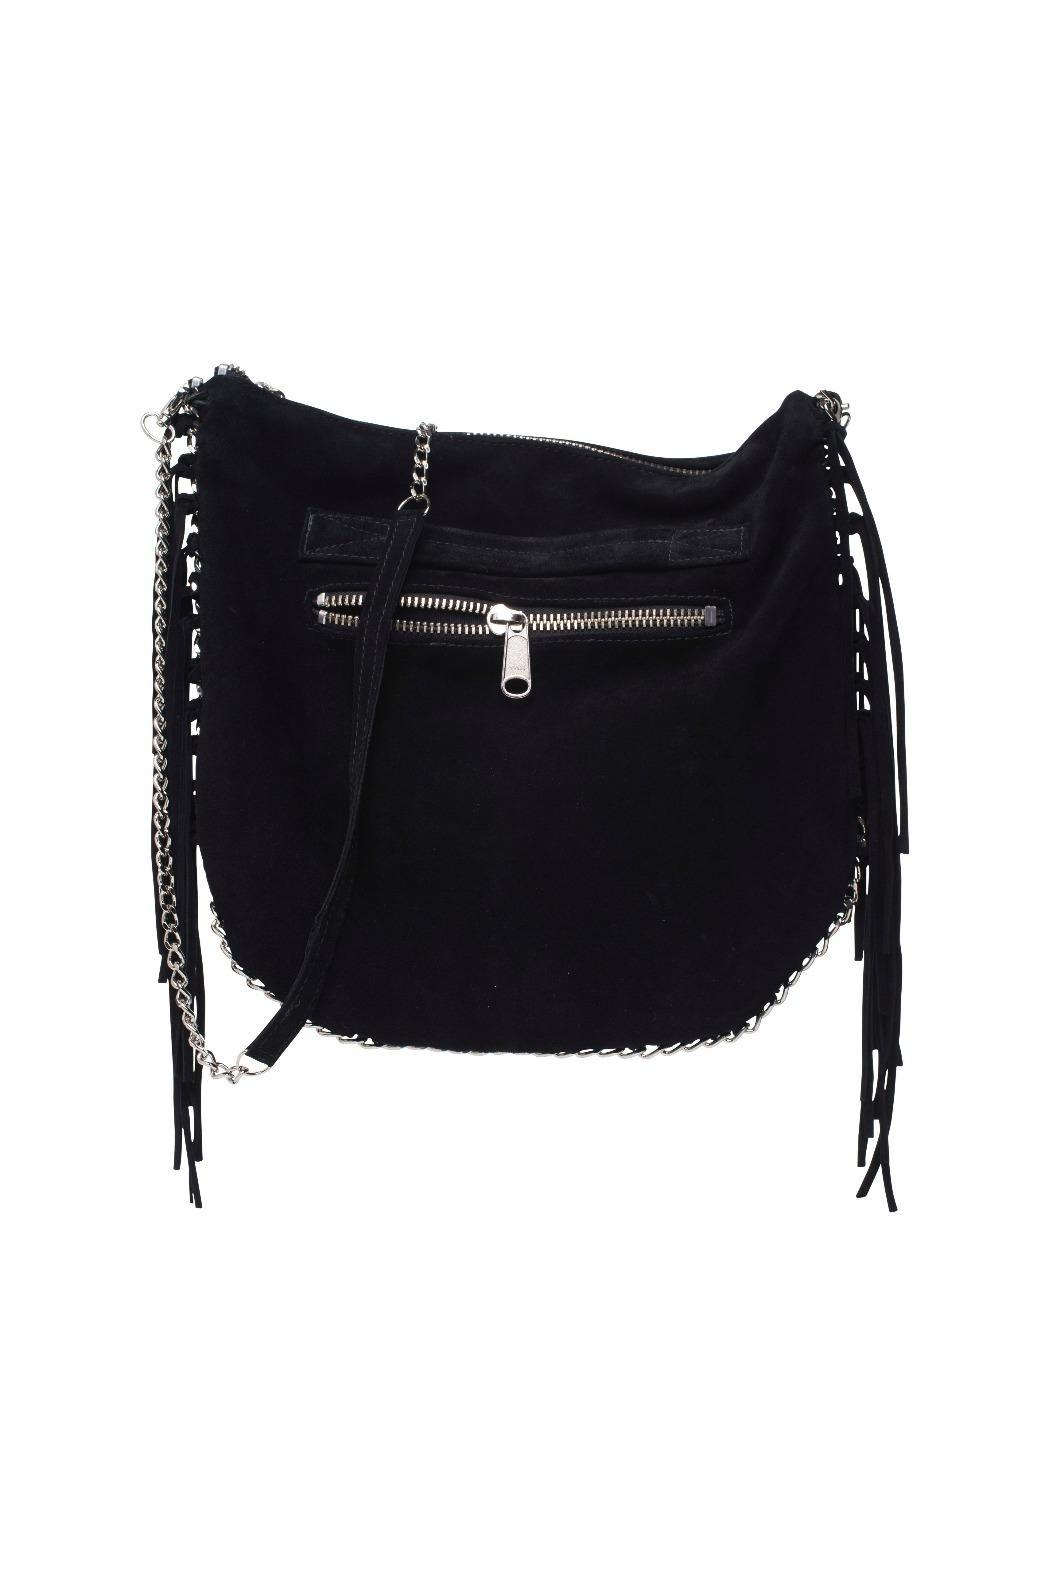 KIMDER Fringe Messenger Bag - Main Image